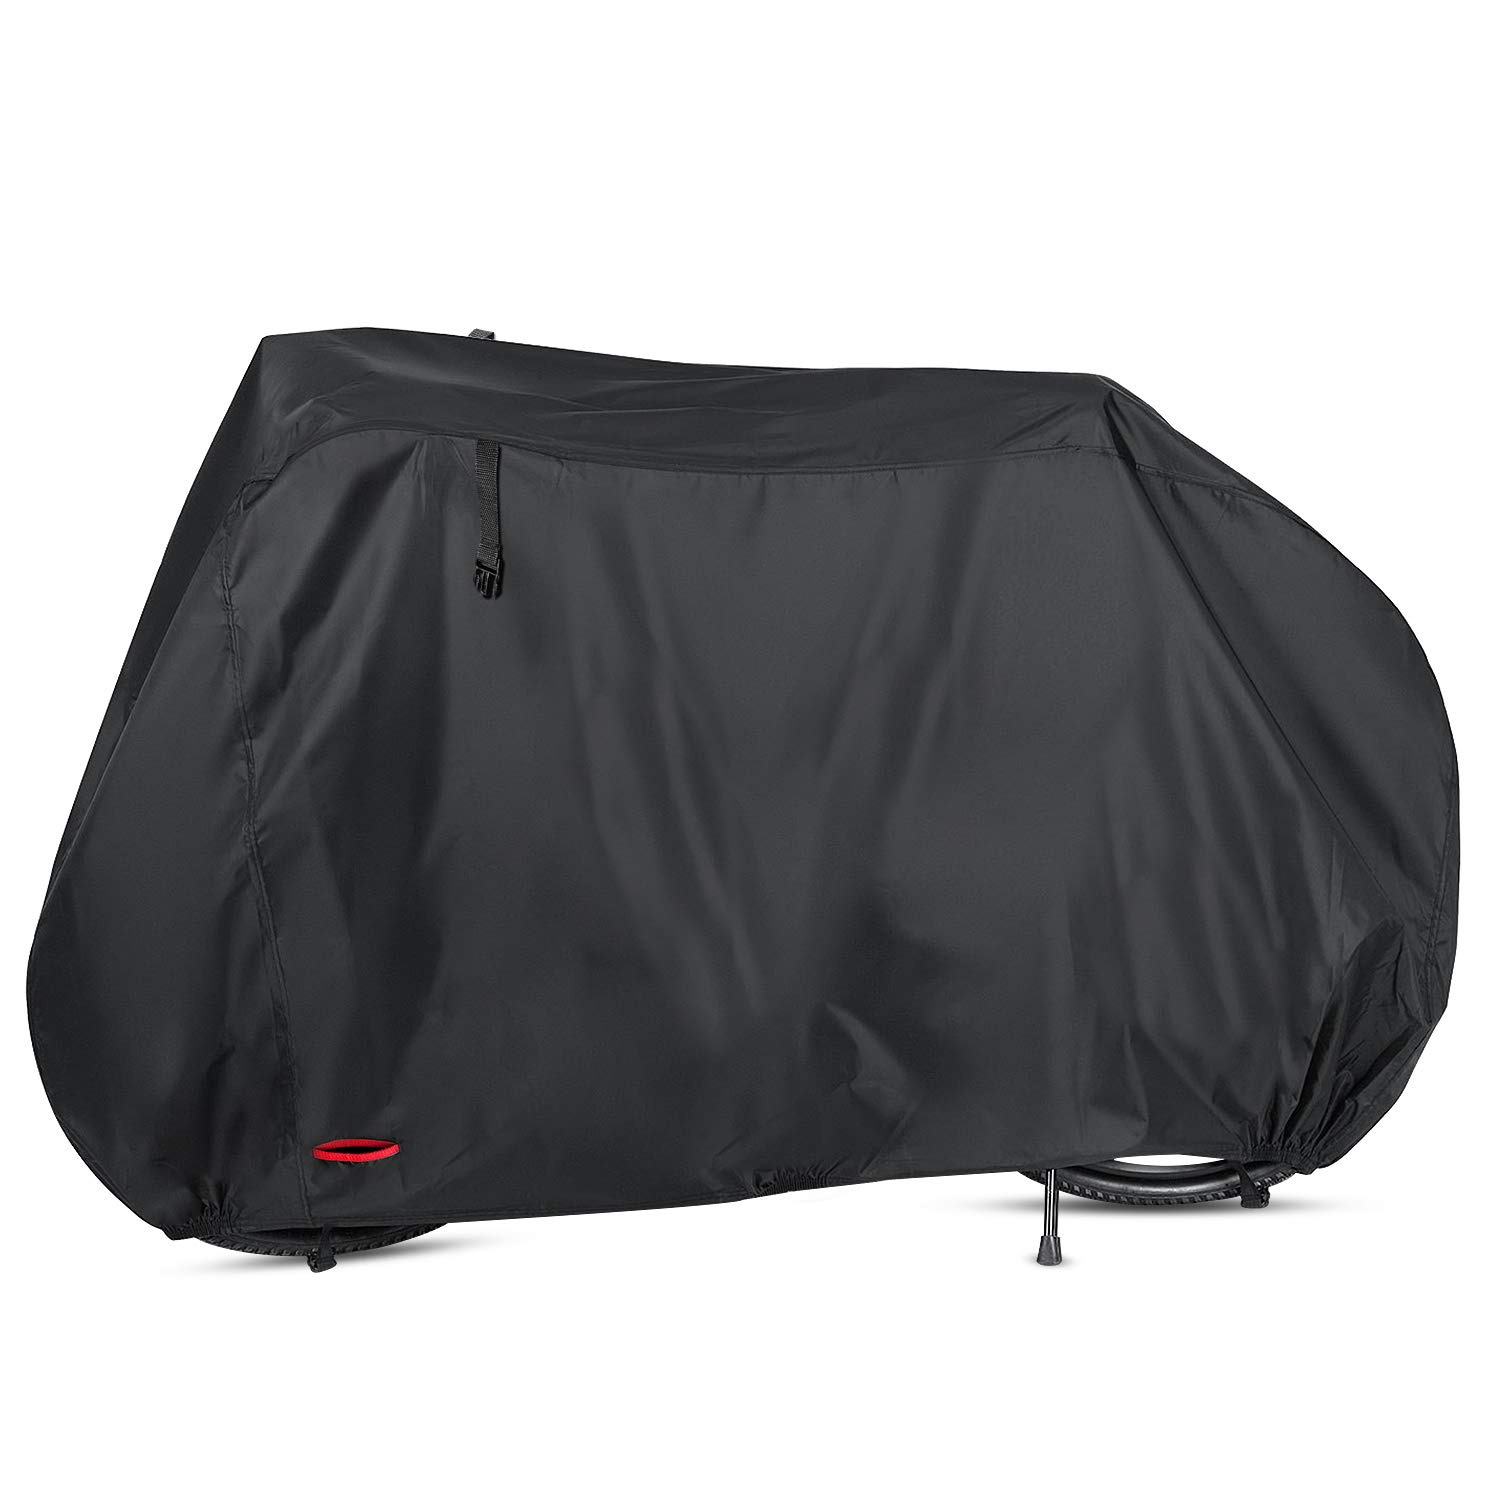 Waterproof Bike Cover 29 Inch Heavy Duty 210D Oxford Bicycle Cover with Double stitching & Heat Sealed Seams, Protection from UV Rain Snow Dust for Mountain Road Electric Bike Hybrid Outdoor Storage by Anglink (Image #1)